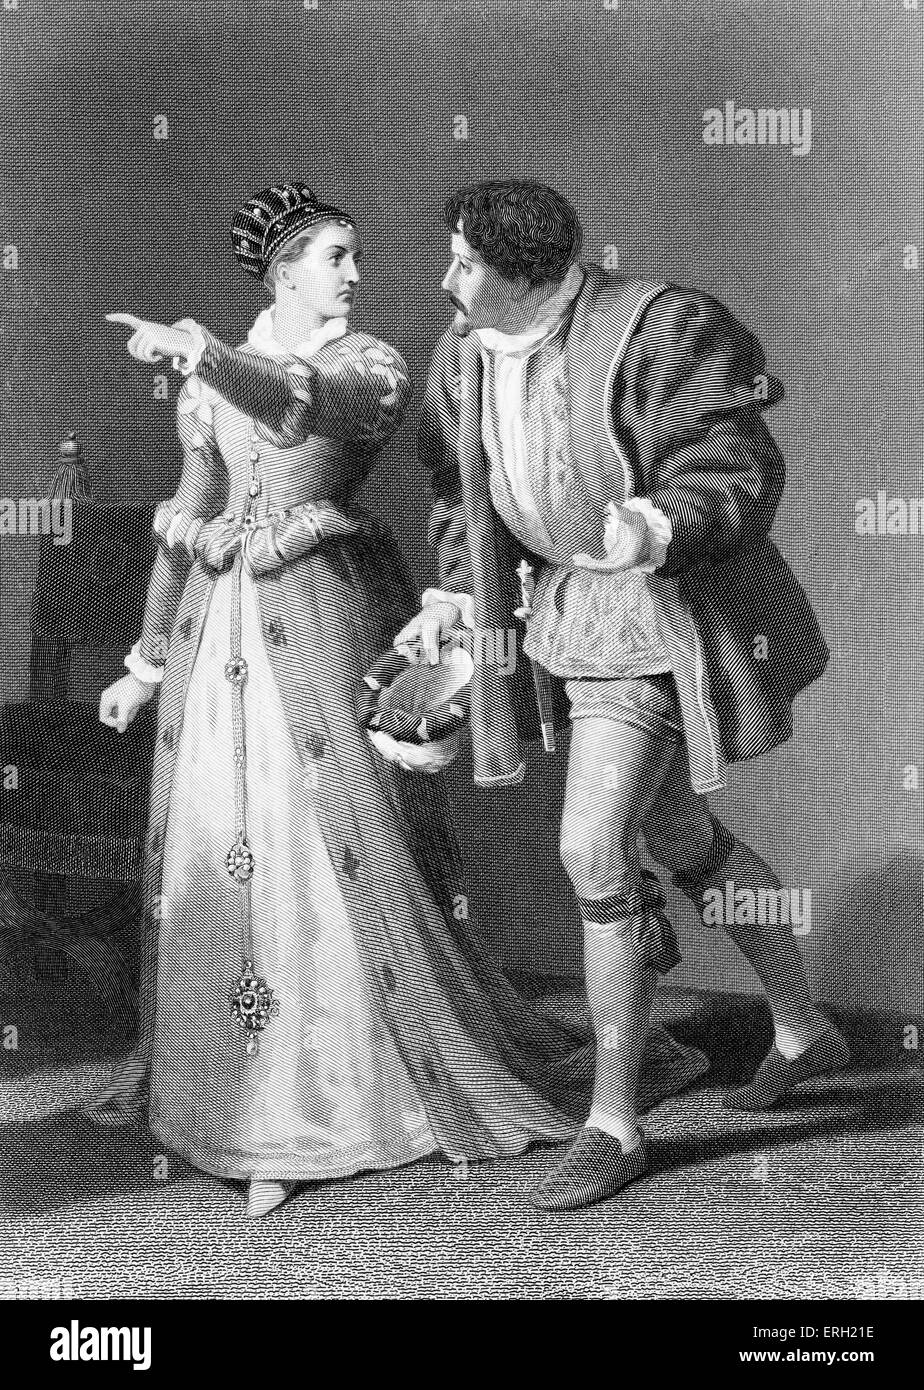 how william shakespeare makes act 1 William shakespeare buy share  scene 1 act i: scene 2 act i: scene 3  a c bradley saw shakespearean tragedy characterized by the tragic flaw, the.